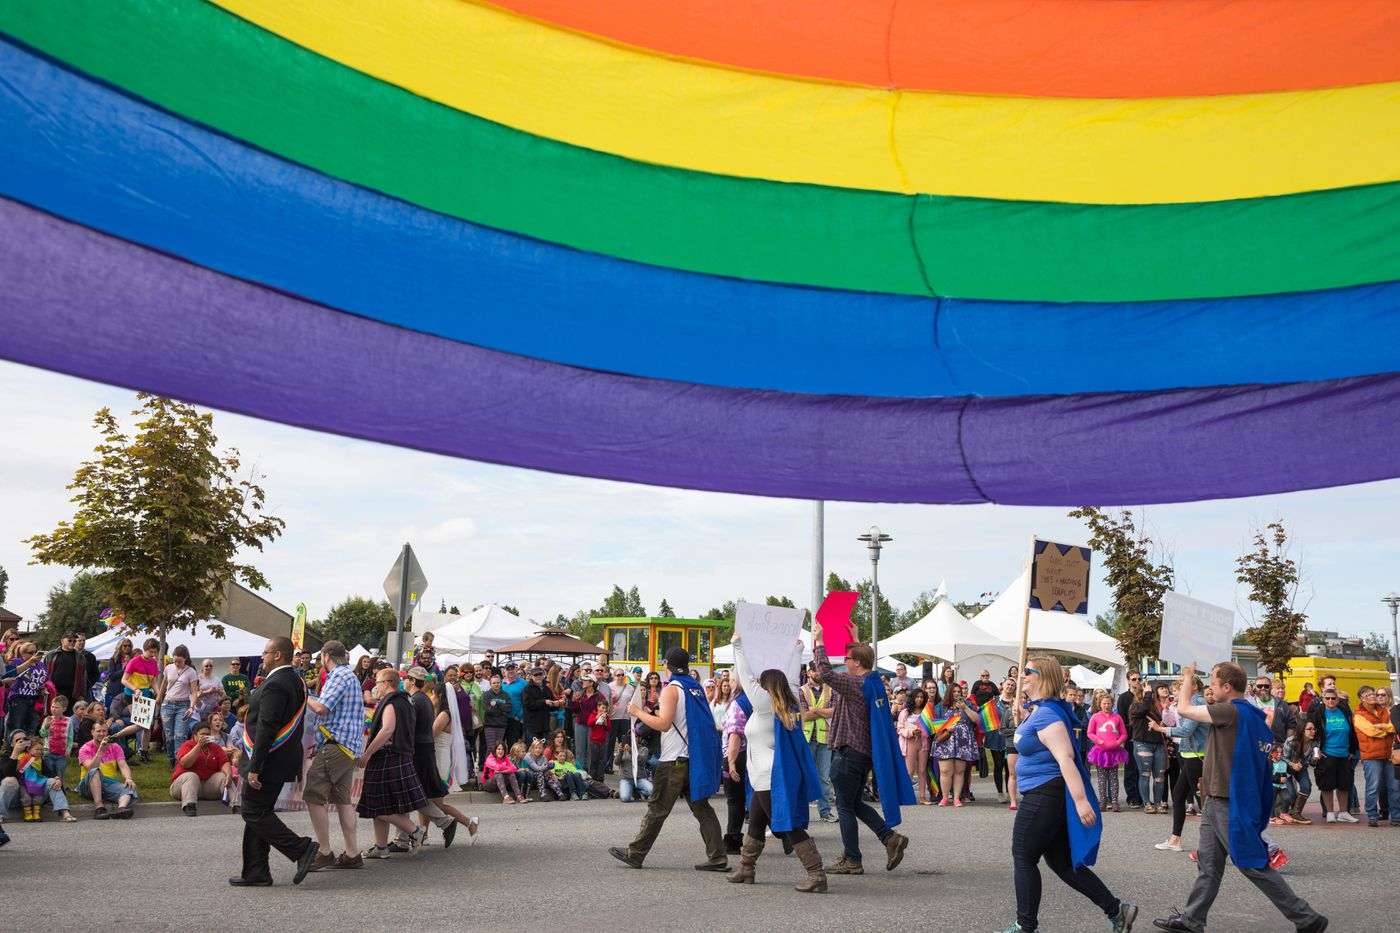 Participants walk in the Alaska Pride equality parade Saturday, June 24, 2017. Identity Alaska, a statewide LGBT organization, has organized a pride festival each year since its founding in 1977. (Loren Holmes / Alaska Dispatch News)